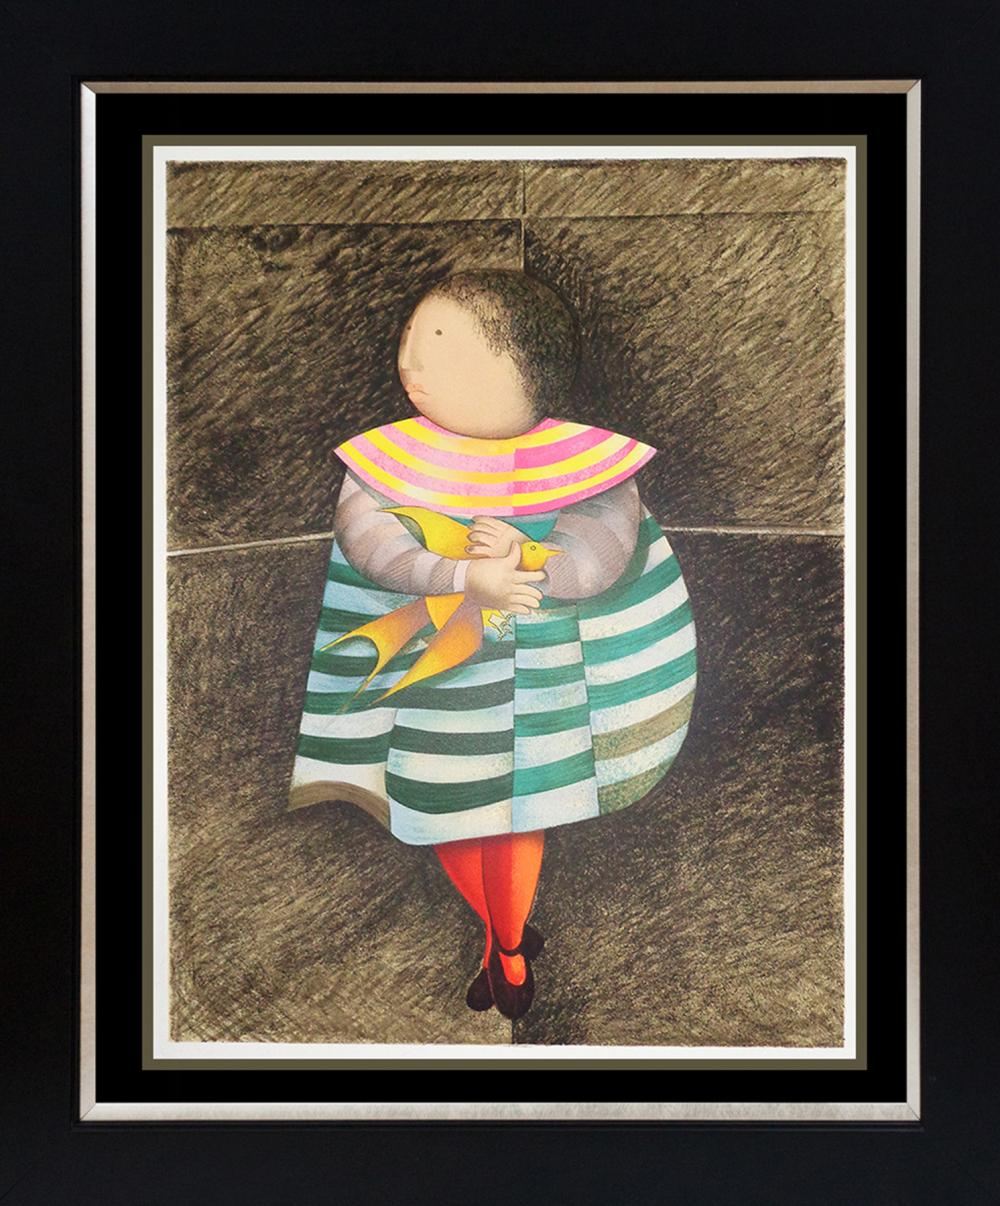 Lot 3521: Limited Edition Serigraph by Boulanger